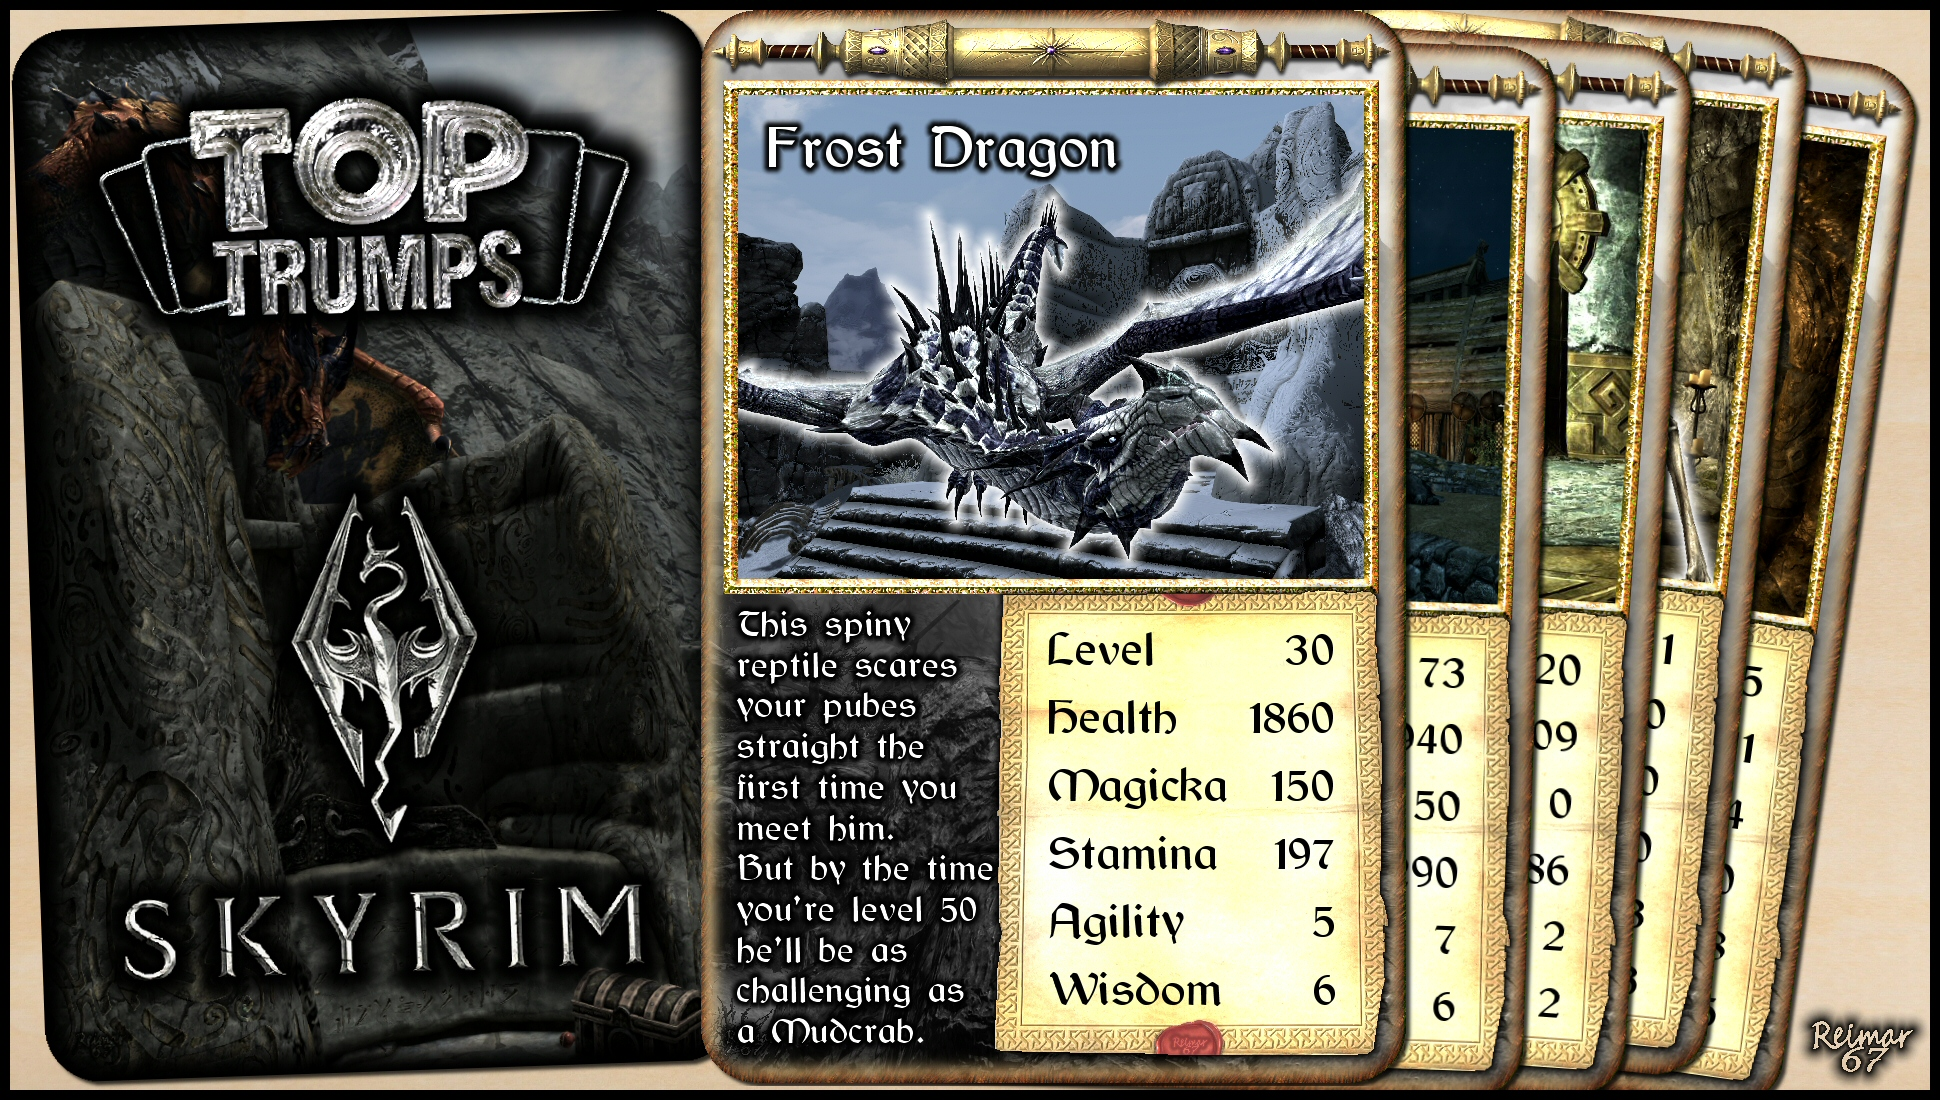 Skyrim Top Trumps - Frost Dragon